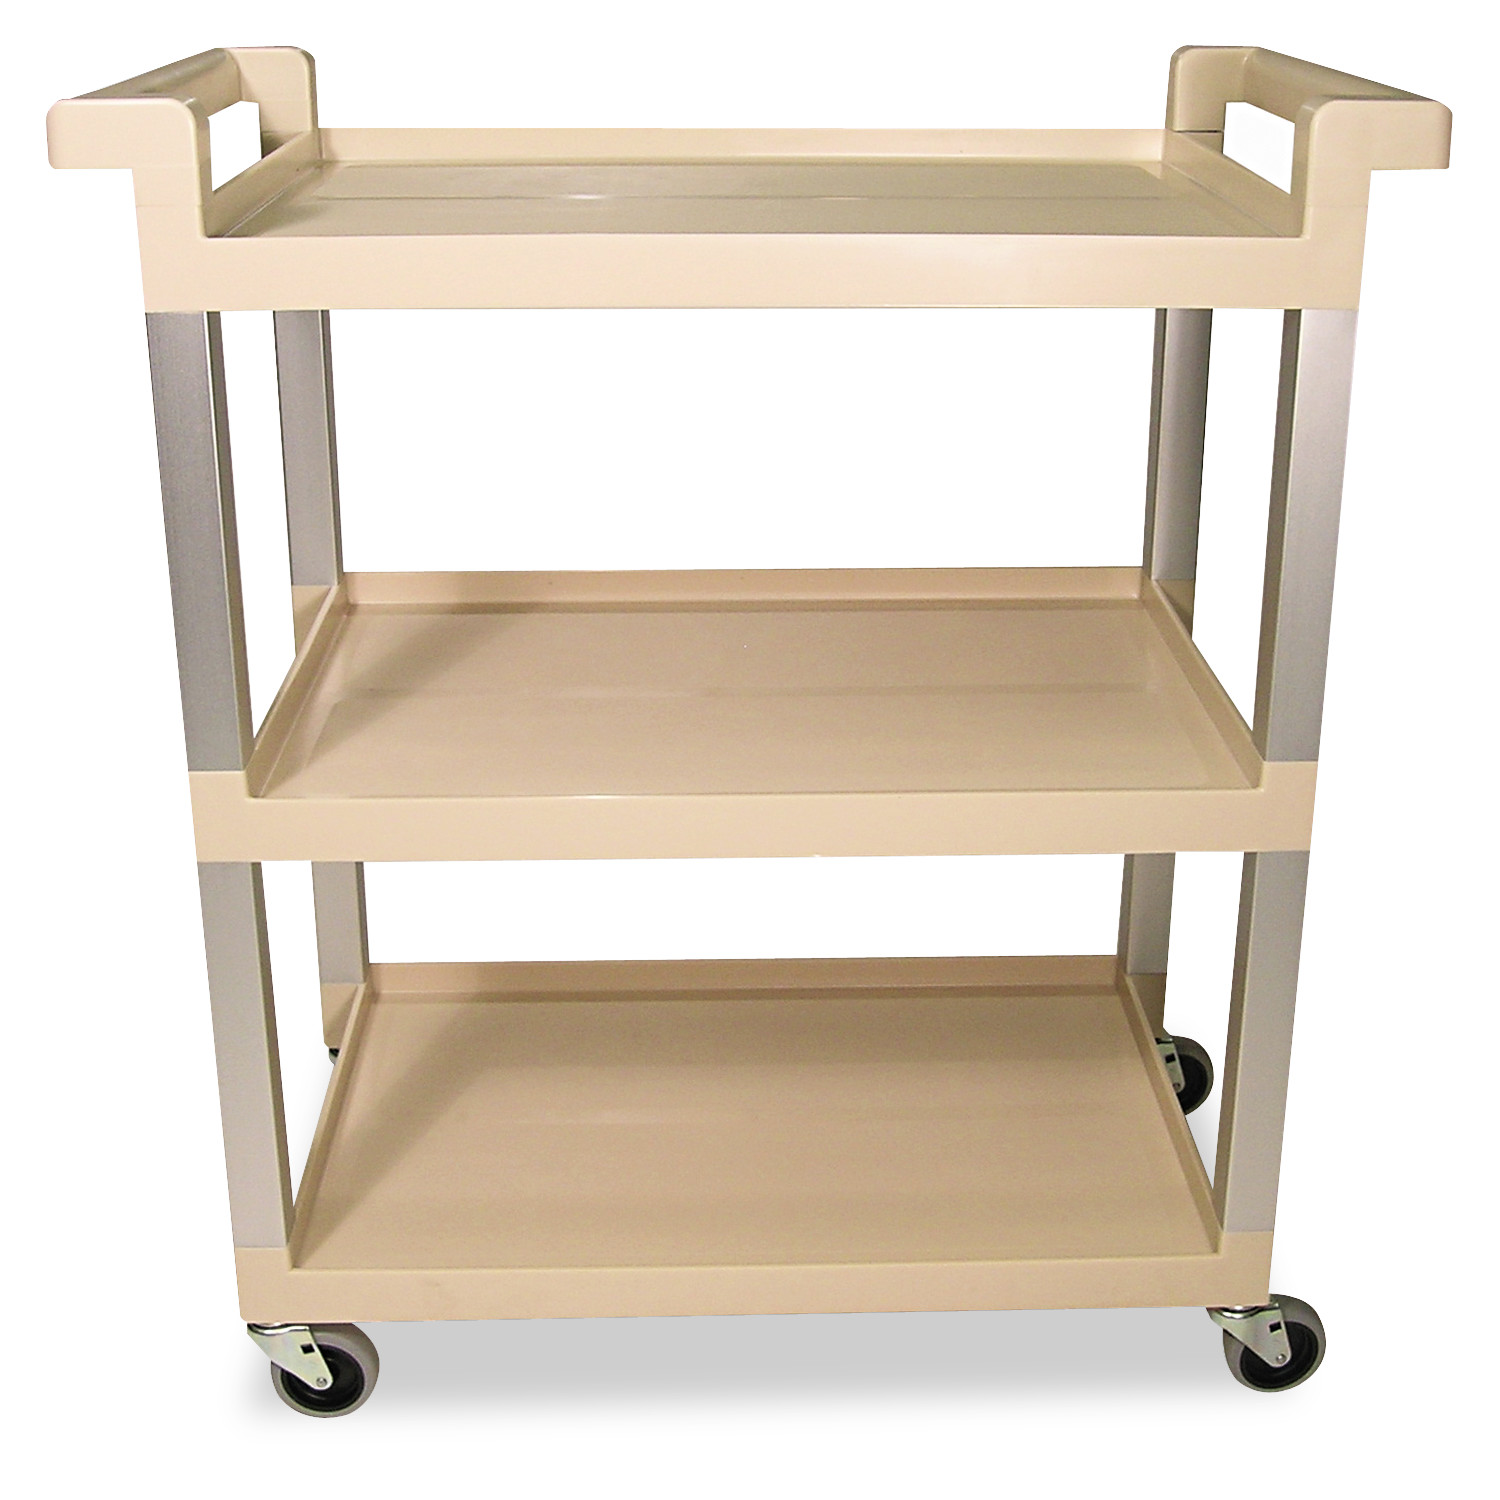 Rubbermaid Commercial Three-Shelf Service Cart w Brushed Aluminum Upright, 16-1 4 x 31-1 2 x 36, Beige by RUBBERMAID COMMERCIAL PROD.